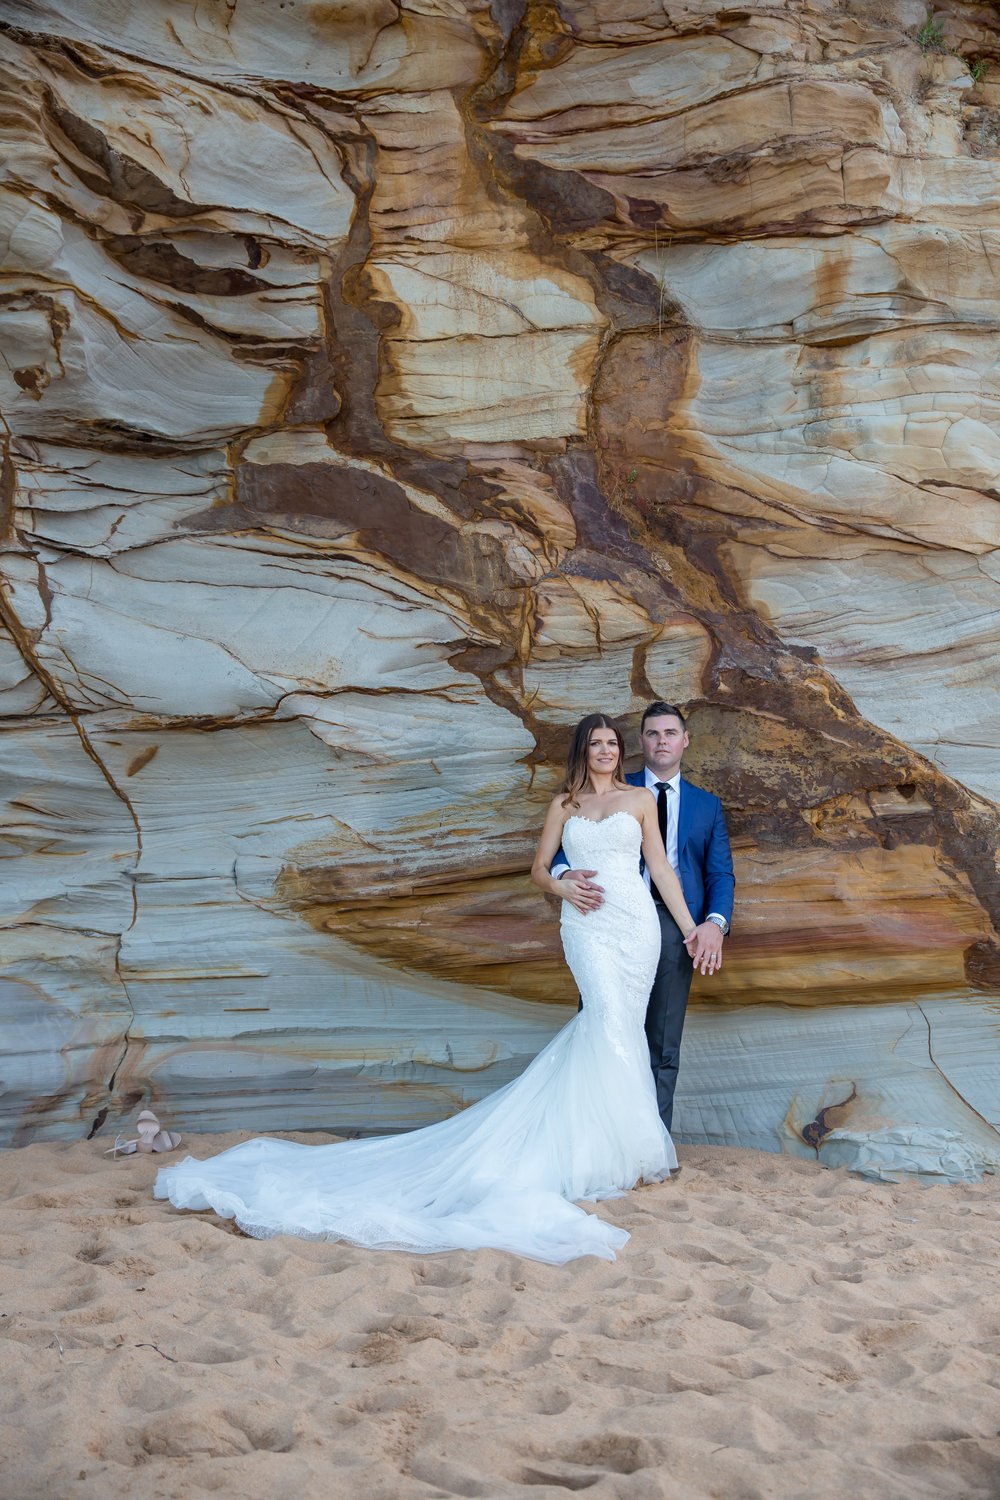 jonahs-whale-beach-wedding-photographer-1800829994.JPG